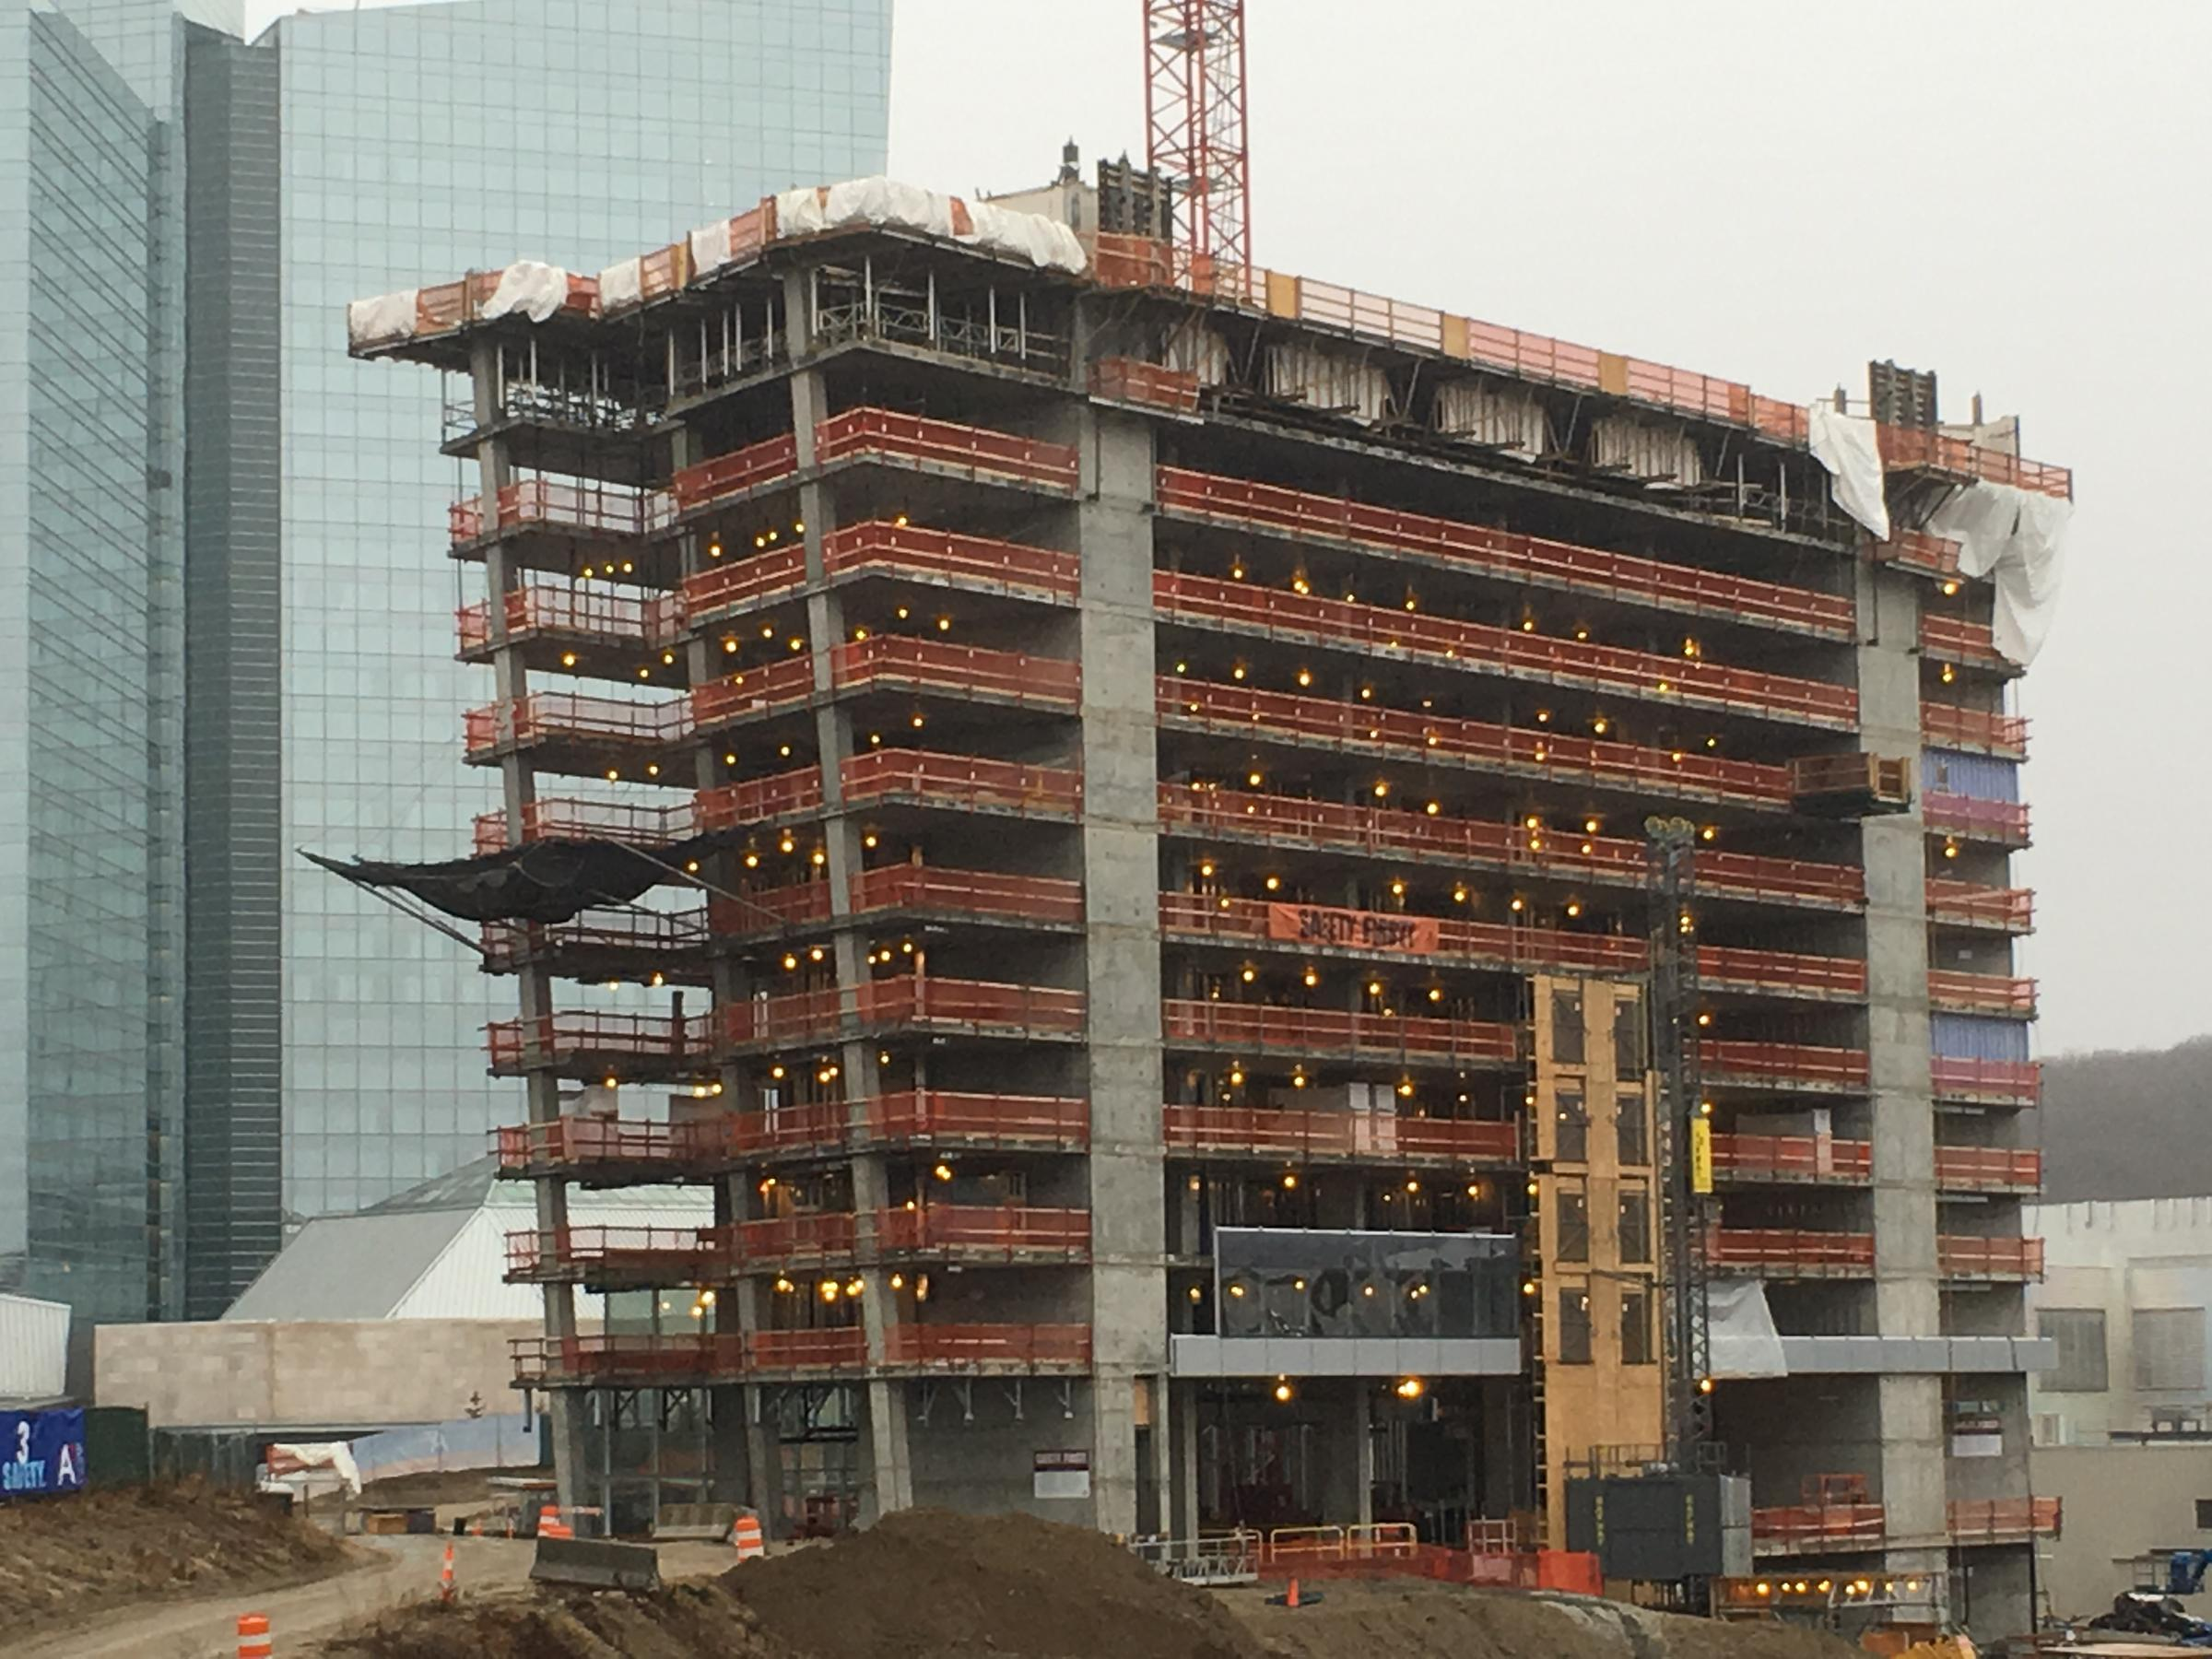 The Structure Of New Earth Hotel At Mohegan Sun